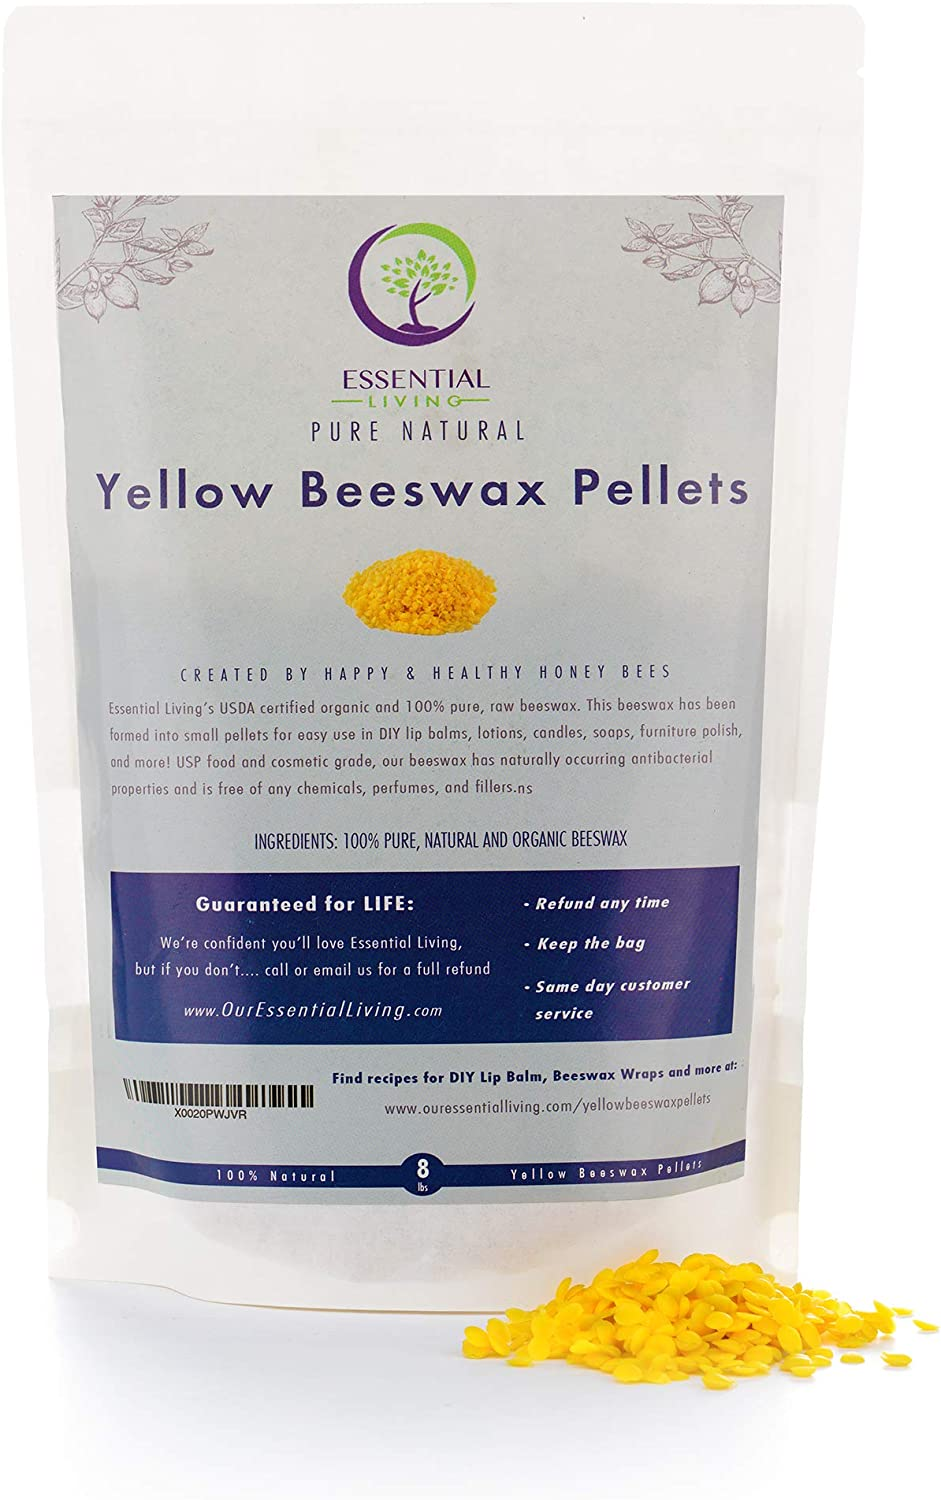 1 Pound -Yellow Organic Beeswax Pellets, Certified Organic, Food Grade, Cosmetic Grade, Great for DIY Lip Balms, Candles, Beeswax Reusable Food Wraps